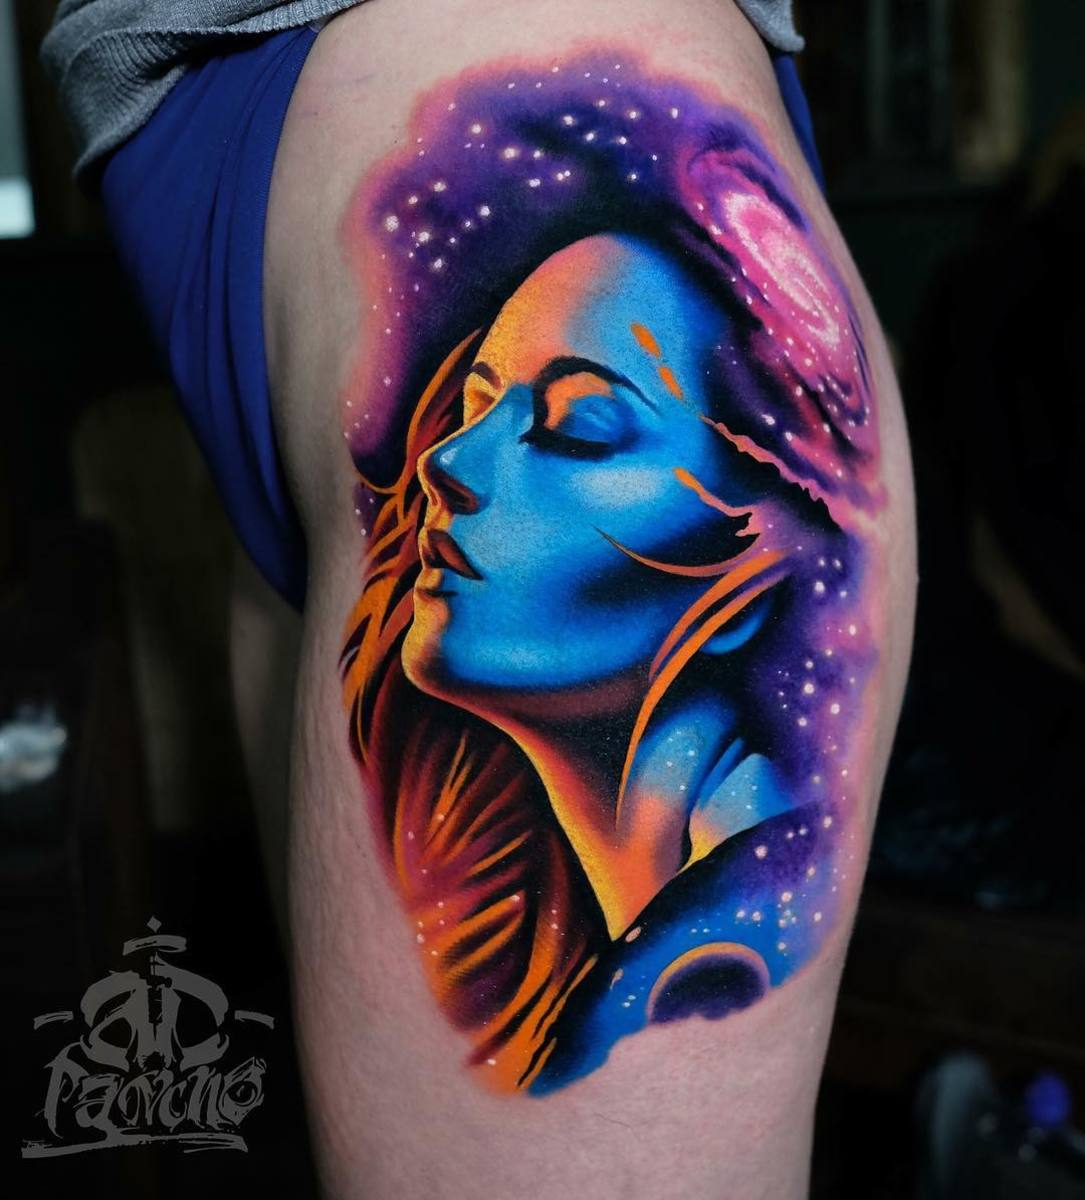 Color tattoo art by Alex Pancho